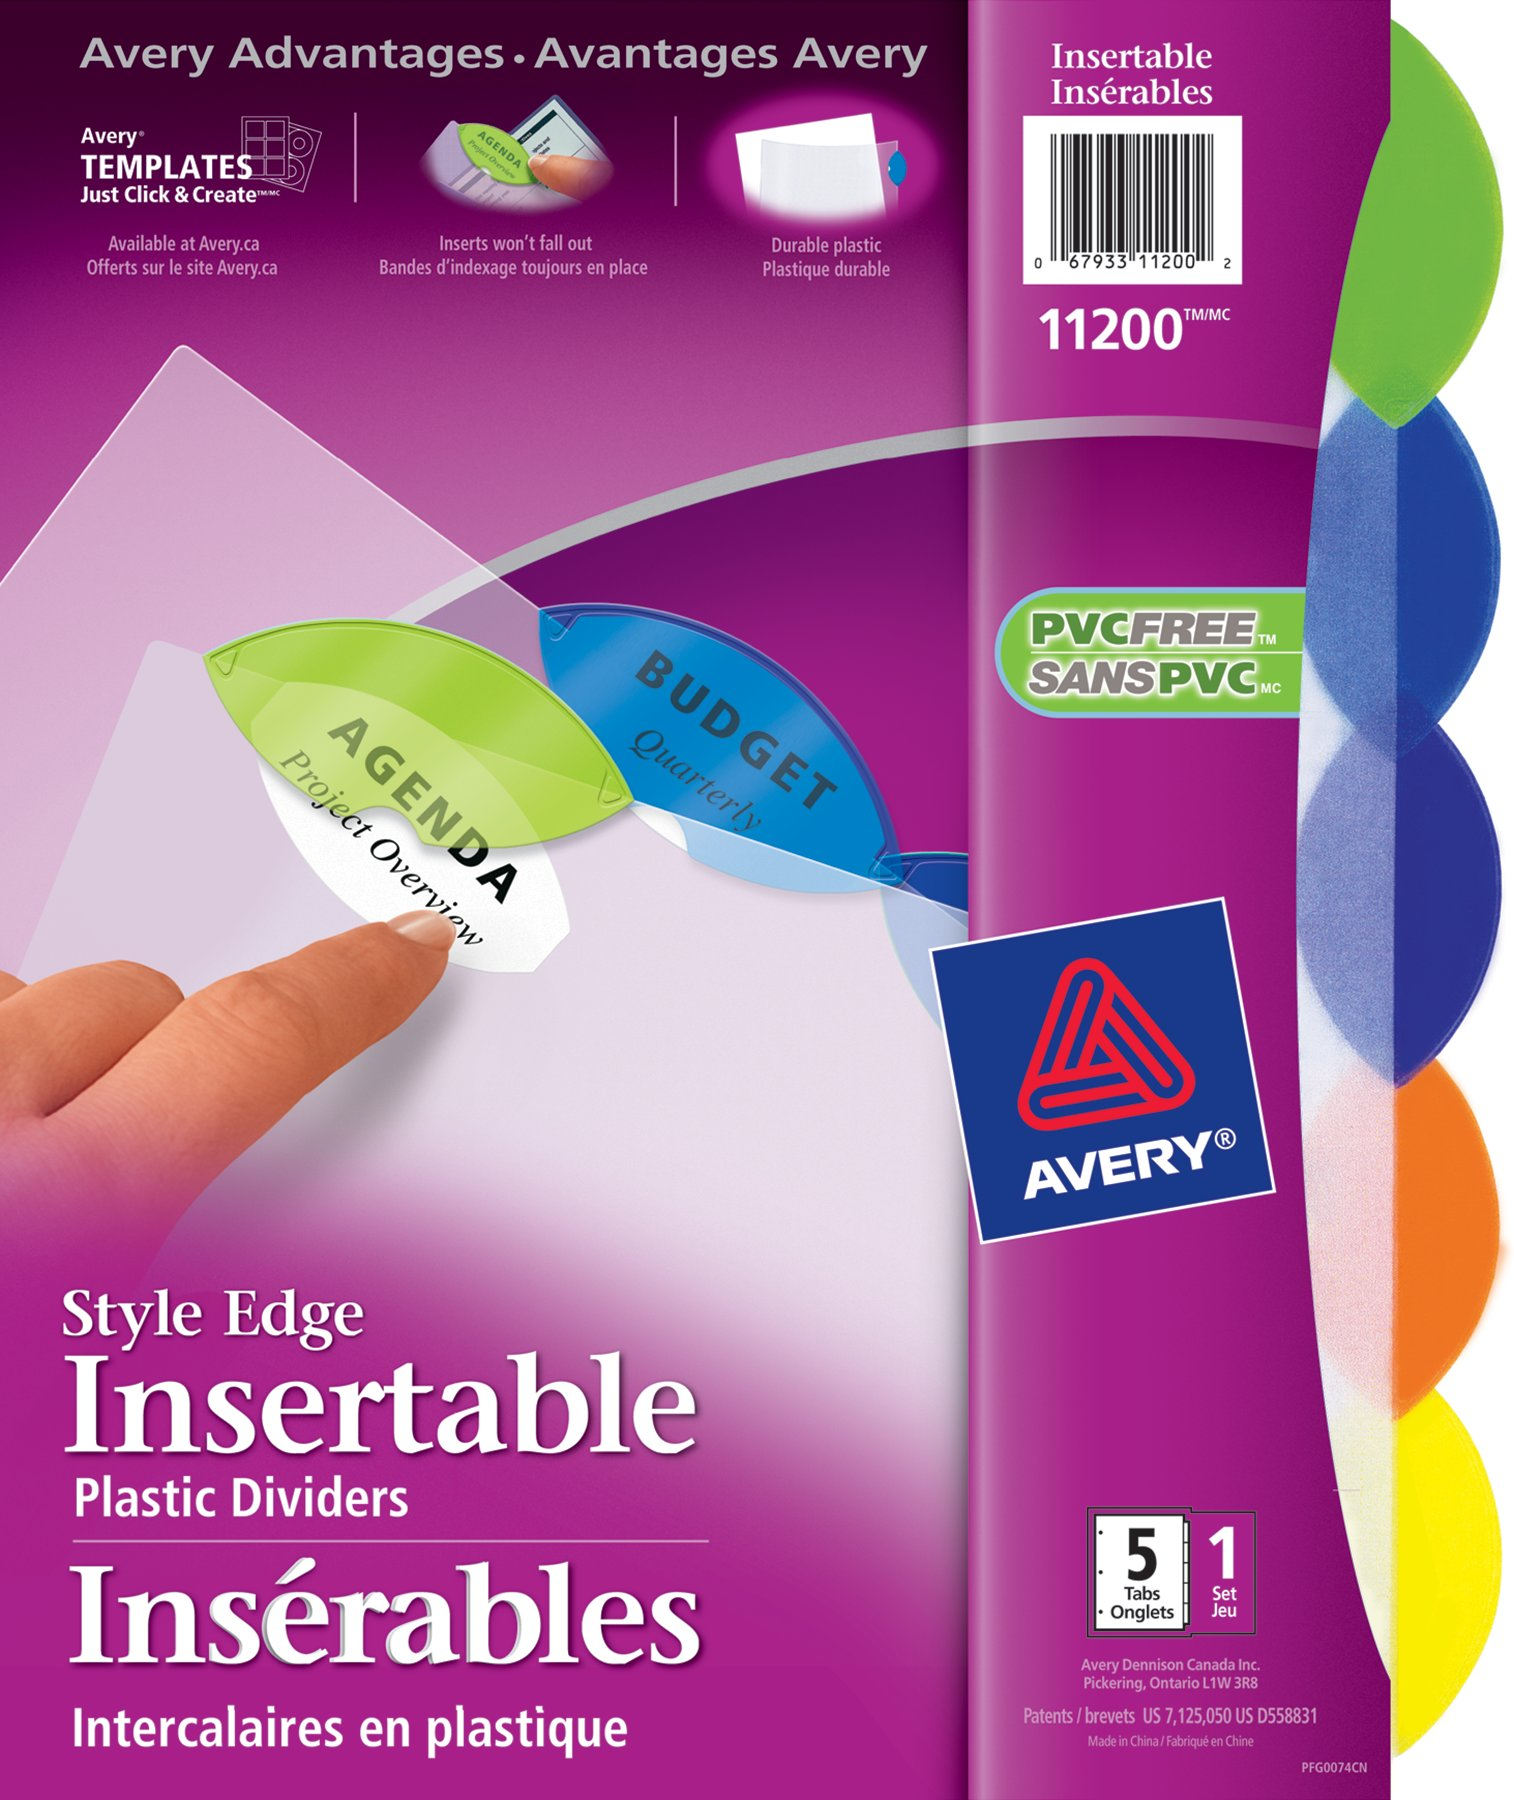 avery template 11201 - insertable dividers